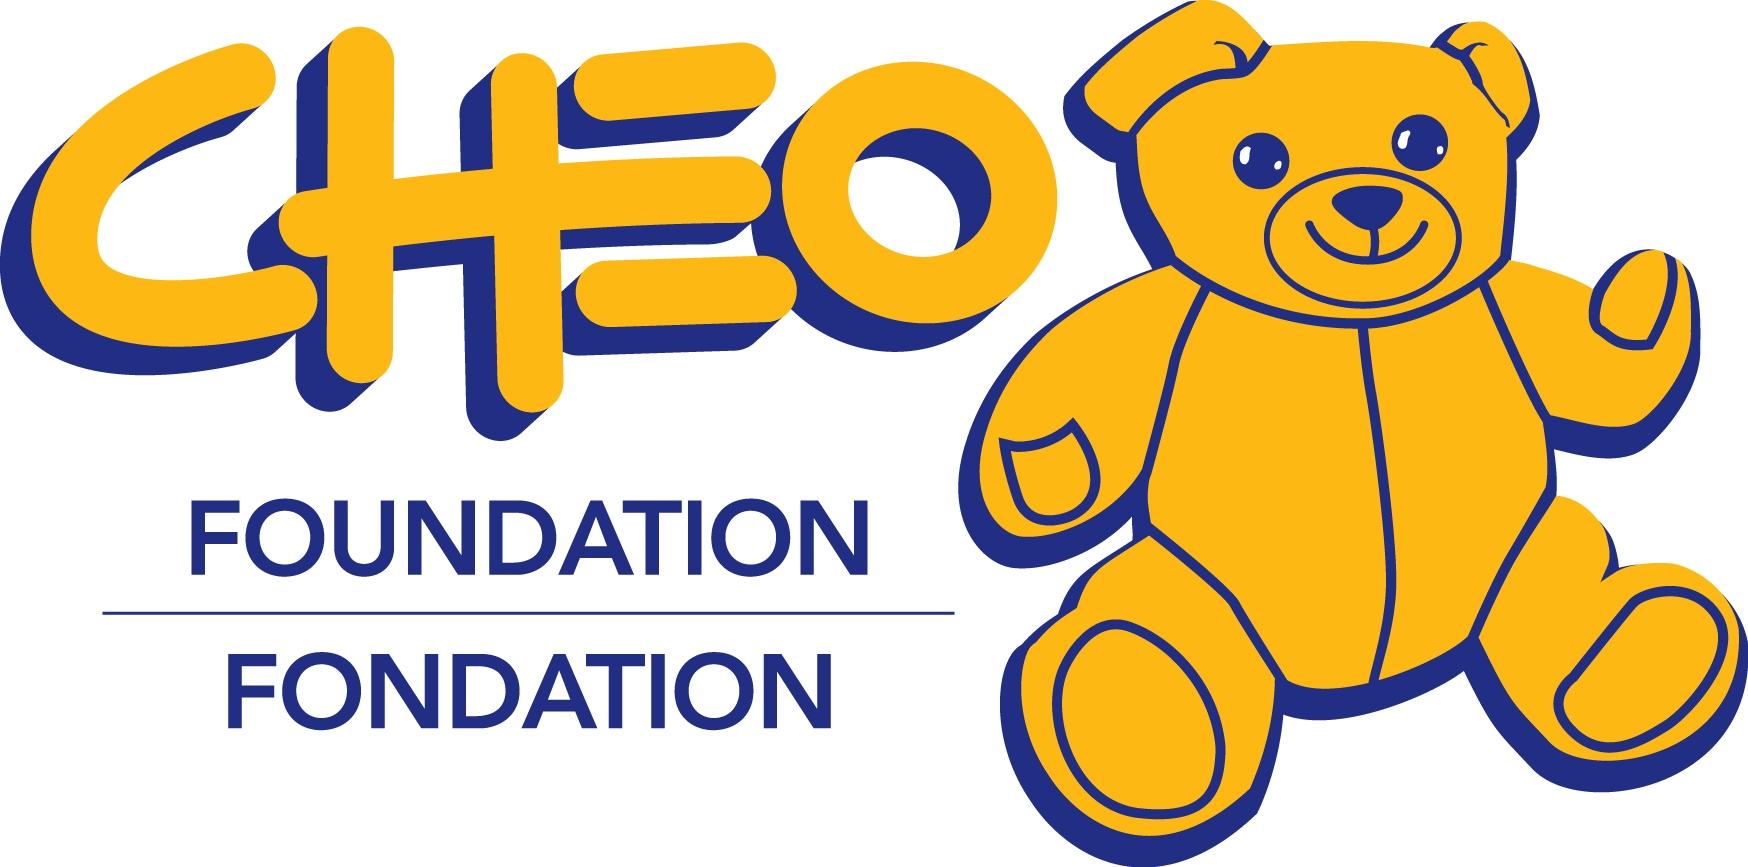 eSAX Supports the CHEO Hospital!